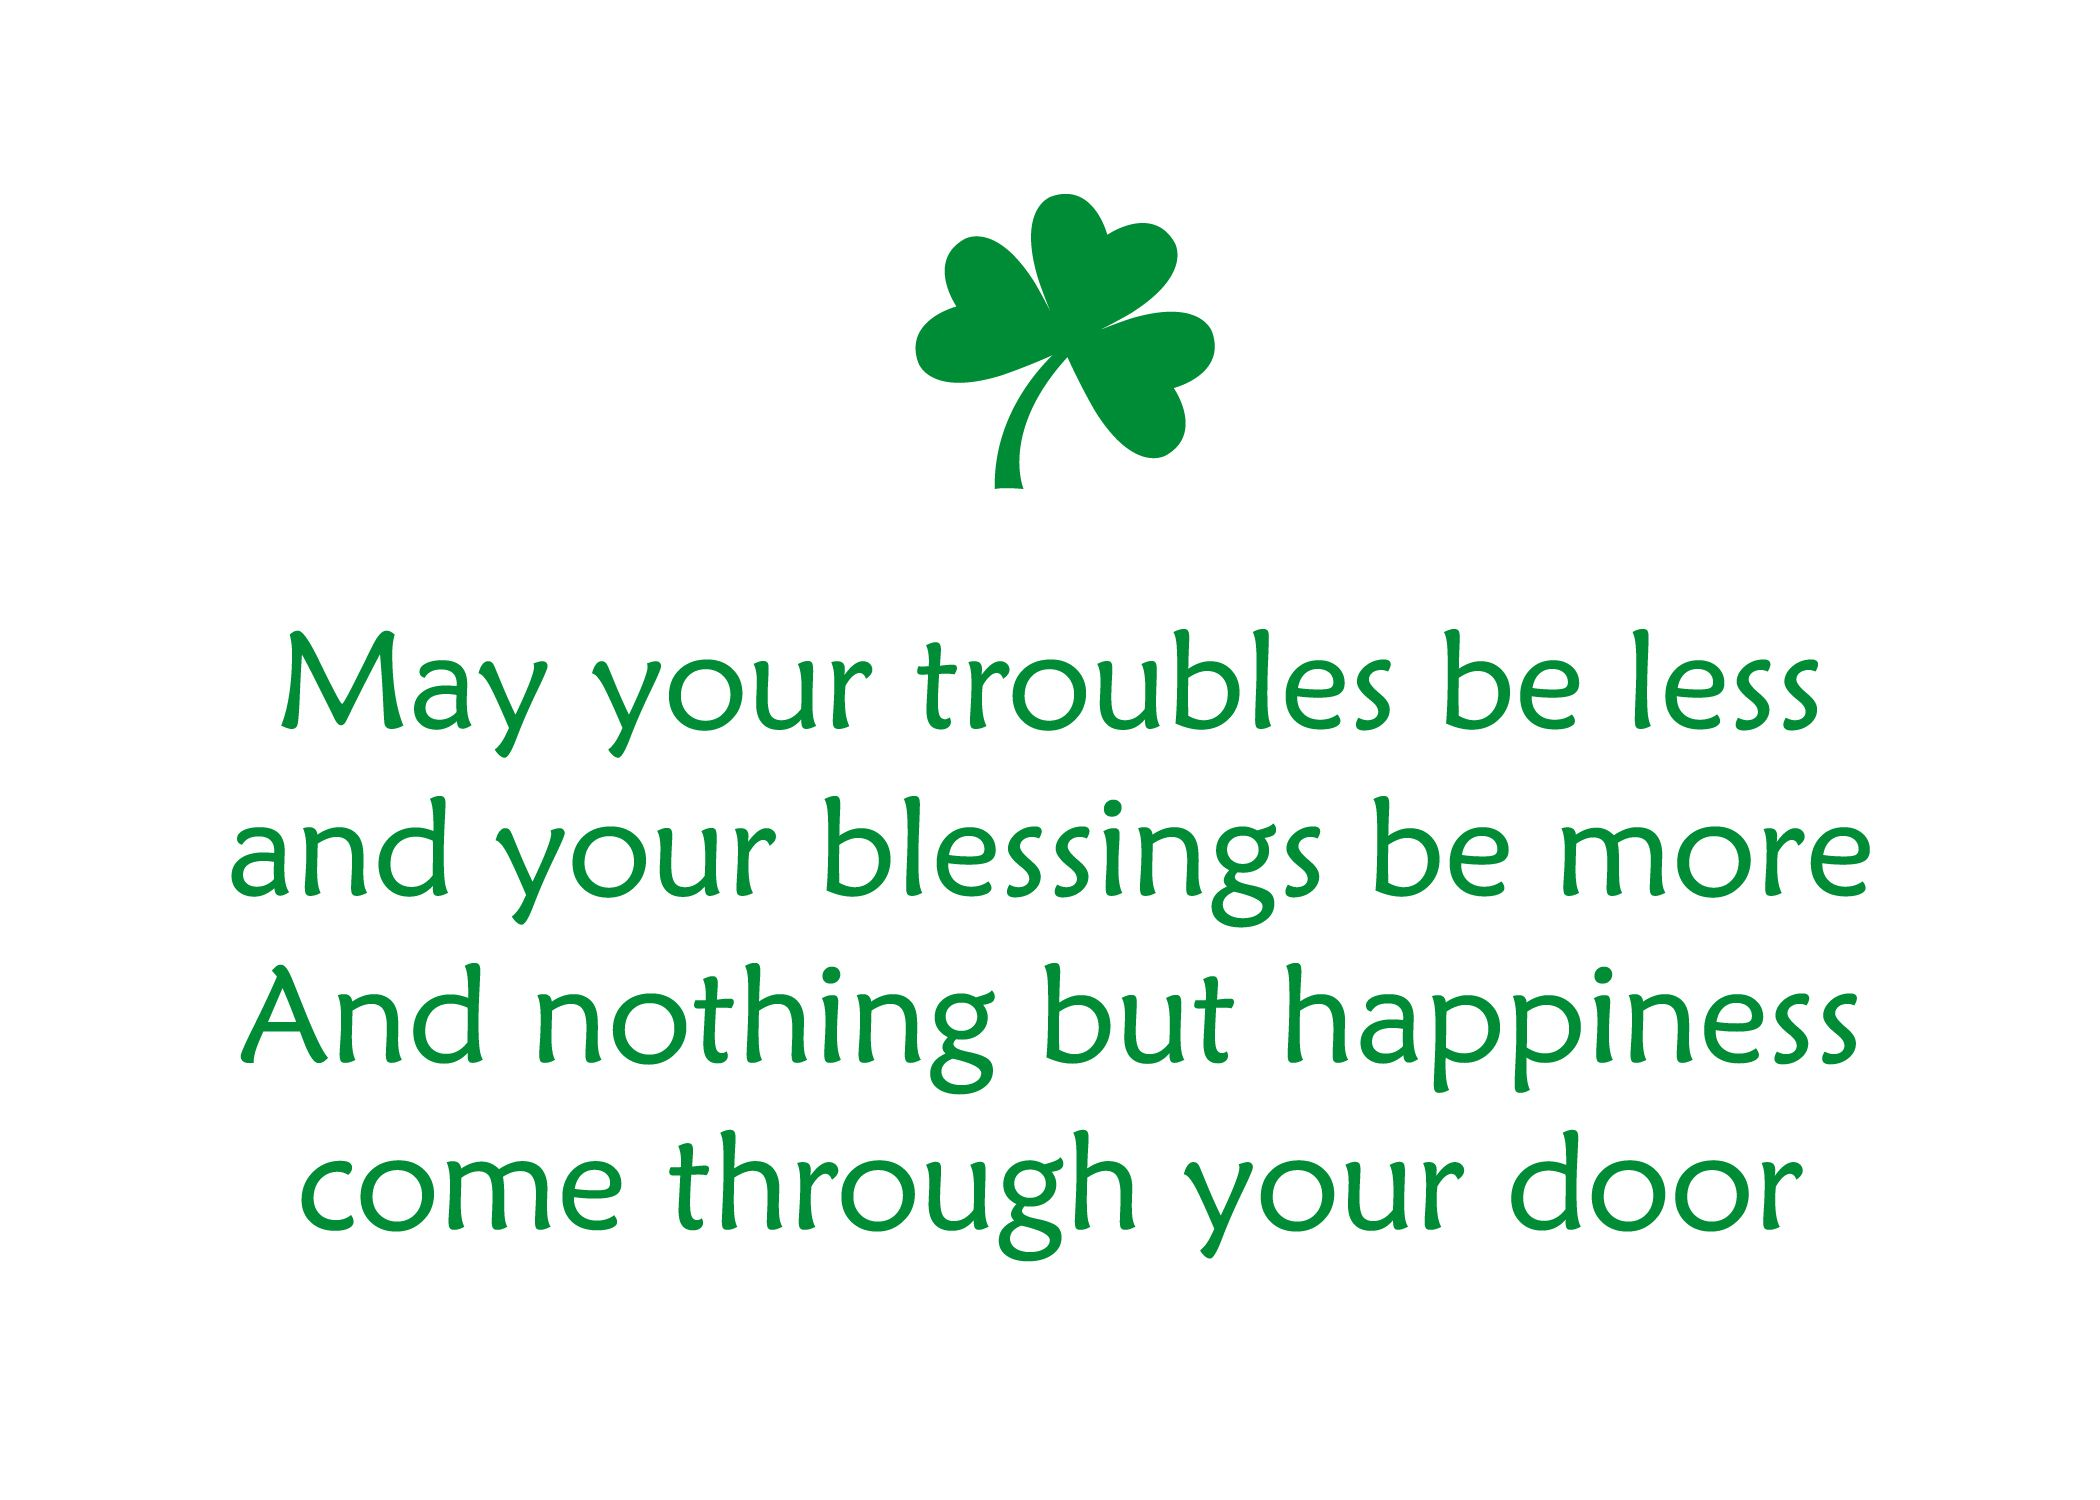 St Patricks Day Quotes Happy St. Patrick's Day Quotes & Sayings | Images with Quotes | St  St Patricks Day Quotes